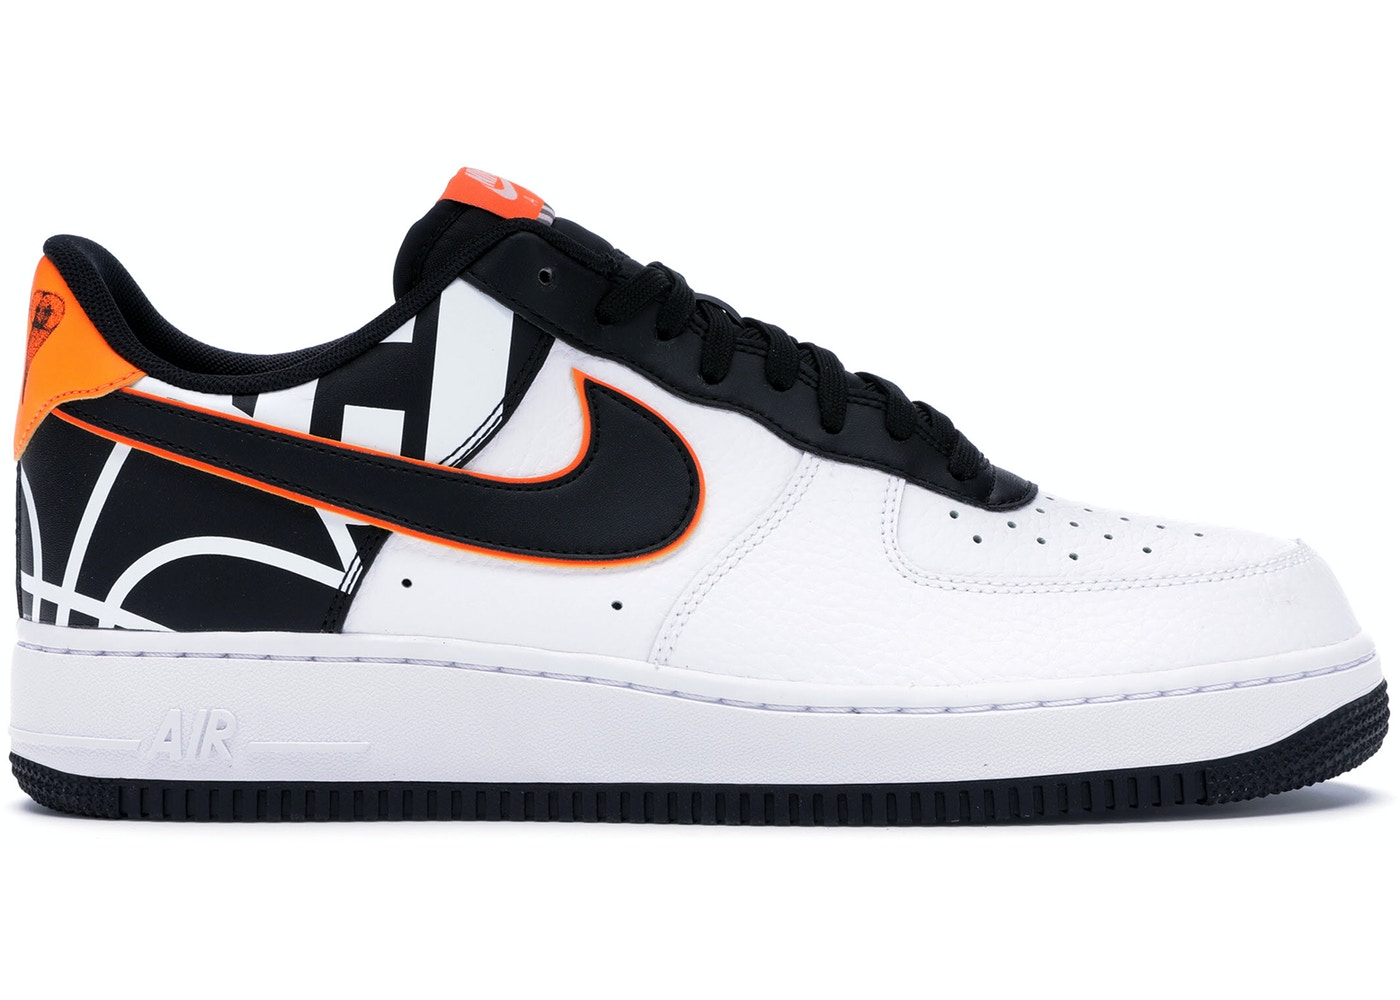 best website 87bb5 e3f50 Air Force 1 Low White Black Orange - 823511-104